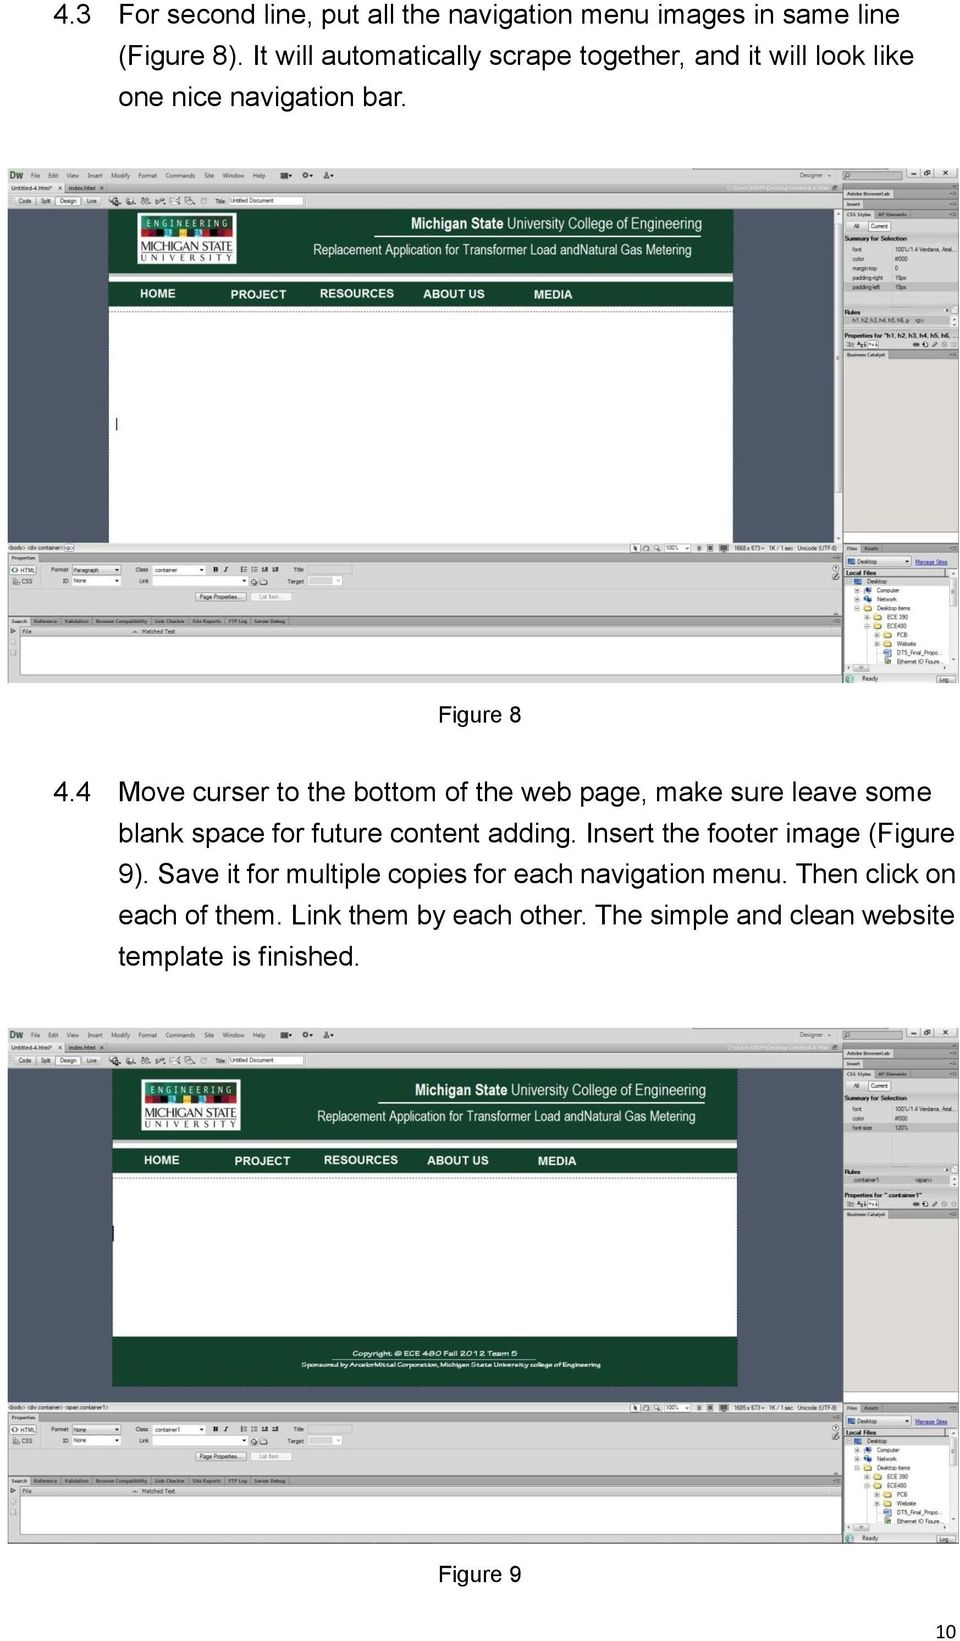 4 Move curser to the bottom of the web page, make sure leave some blank space for future content adding.